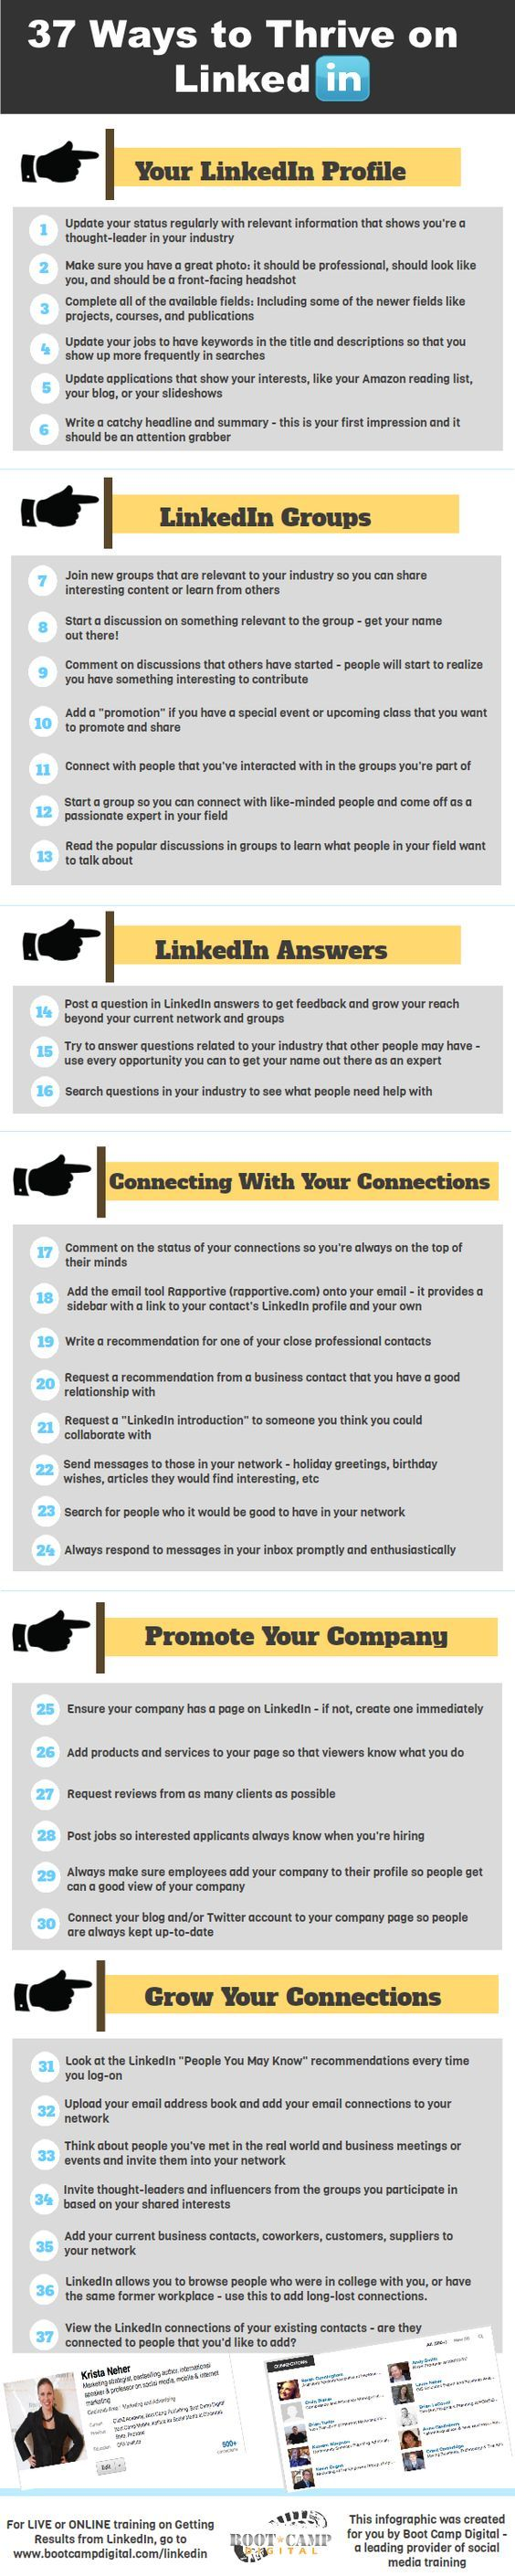 HOW TO FIND A JOB. Read more on Tipsographic.com #career #JobSearch #infographic #projectmanagement #stressrelief